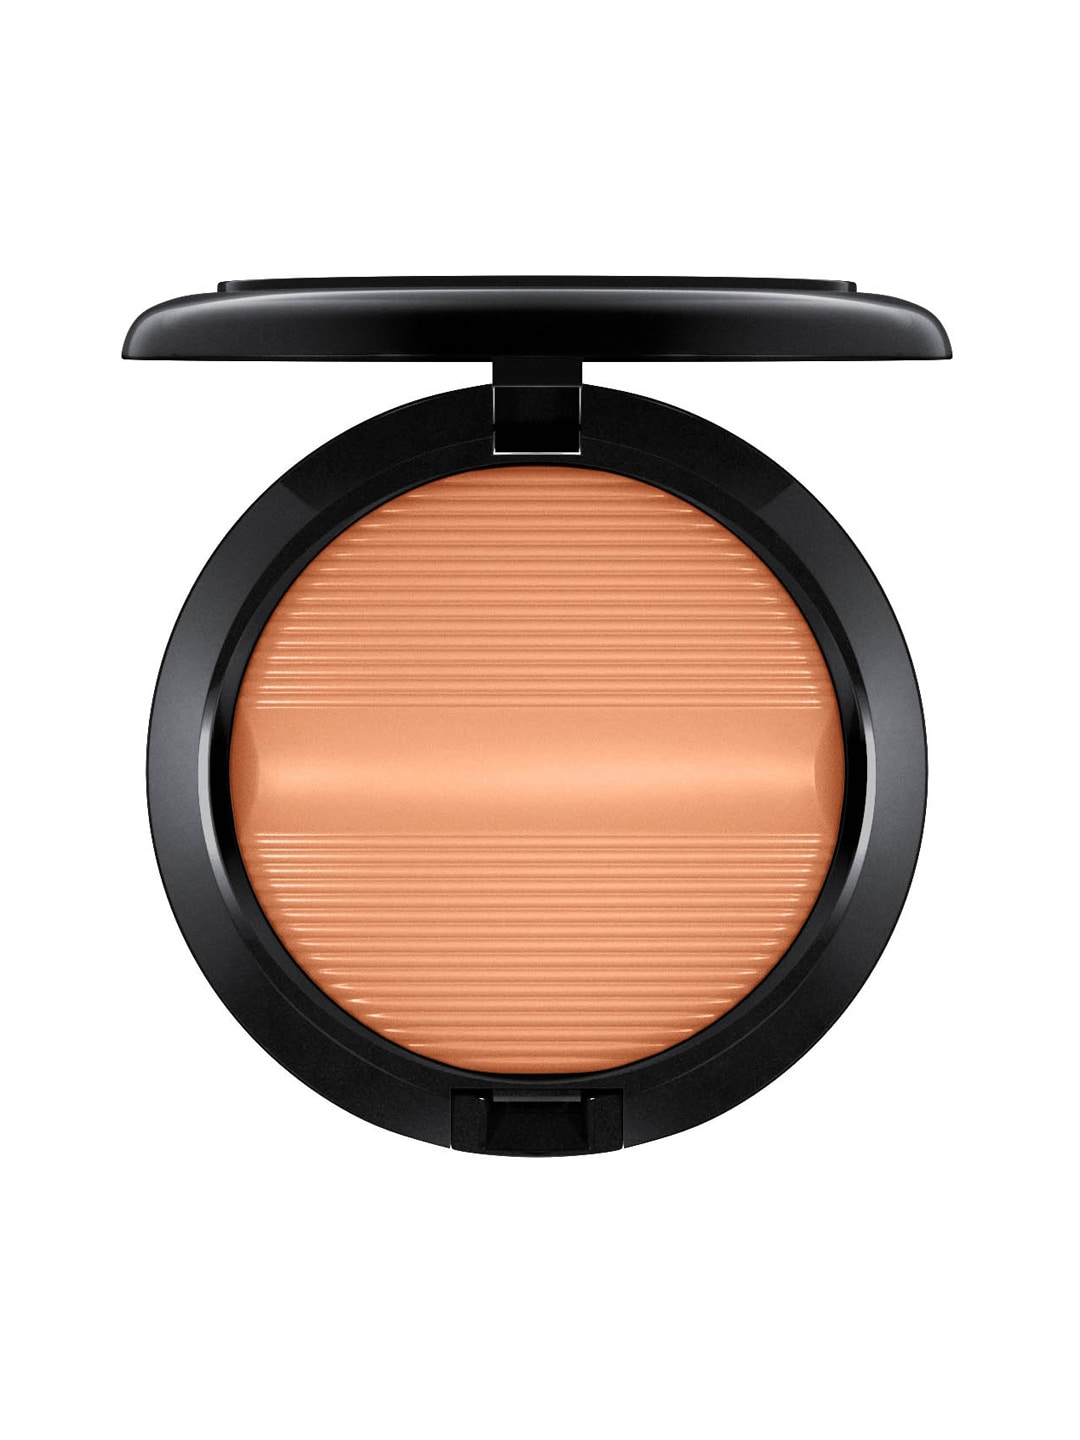 M.A.C Fruity Juicy Delphic Studio Sculpt Bronzing Powder image